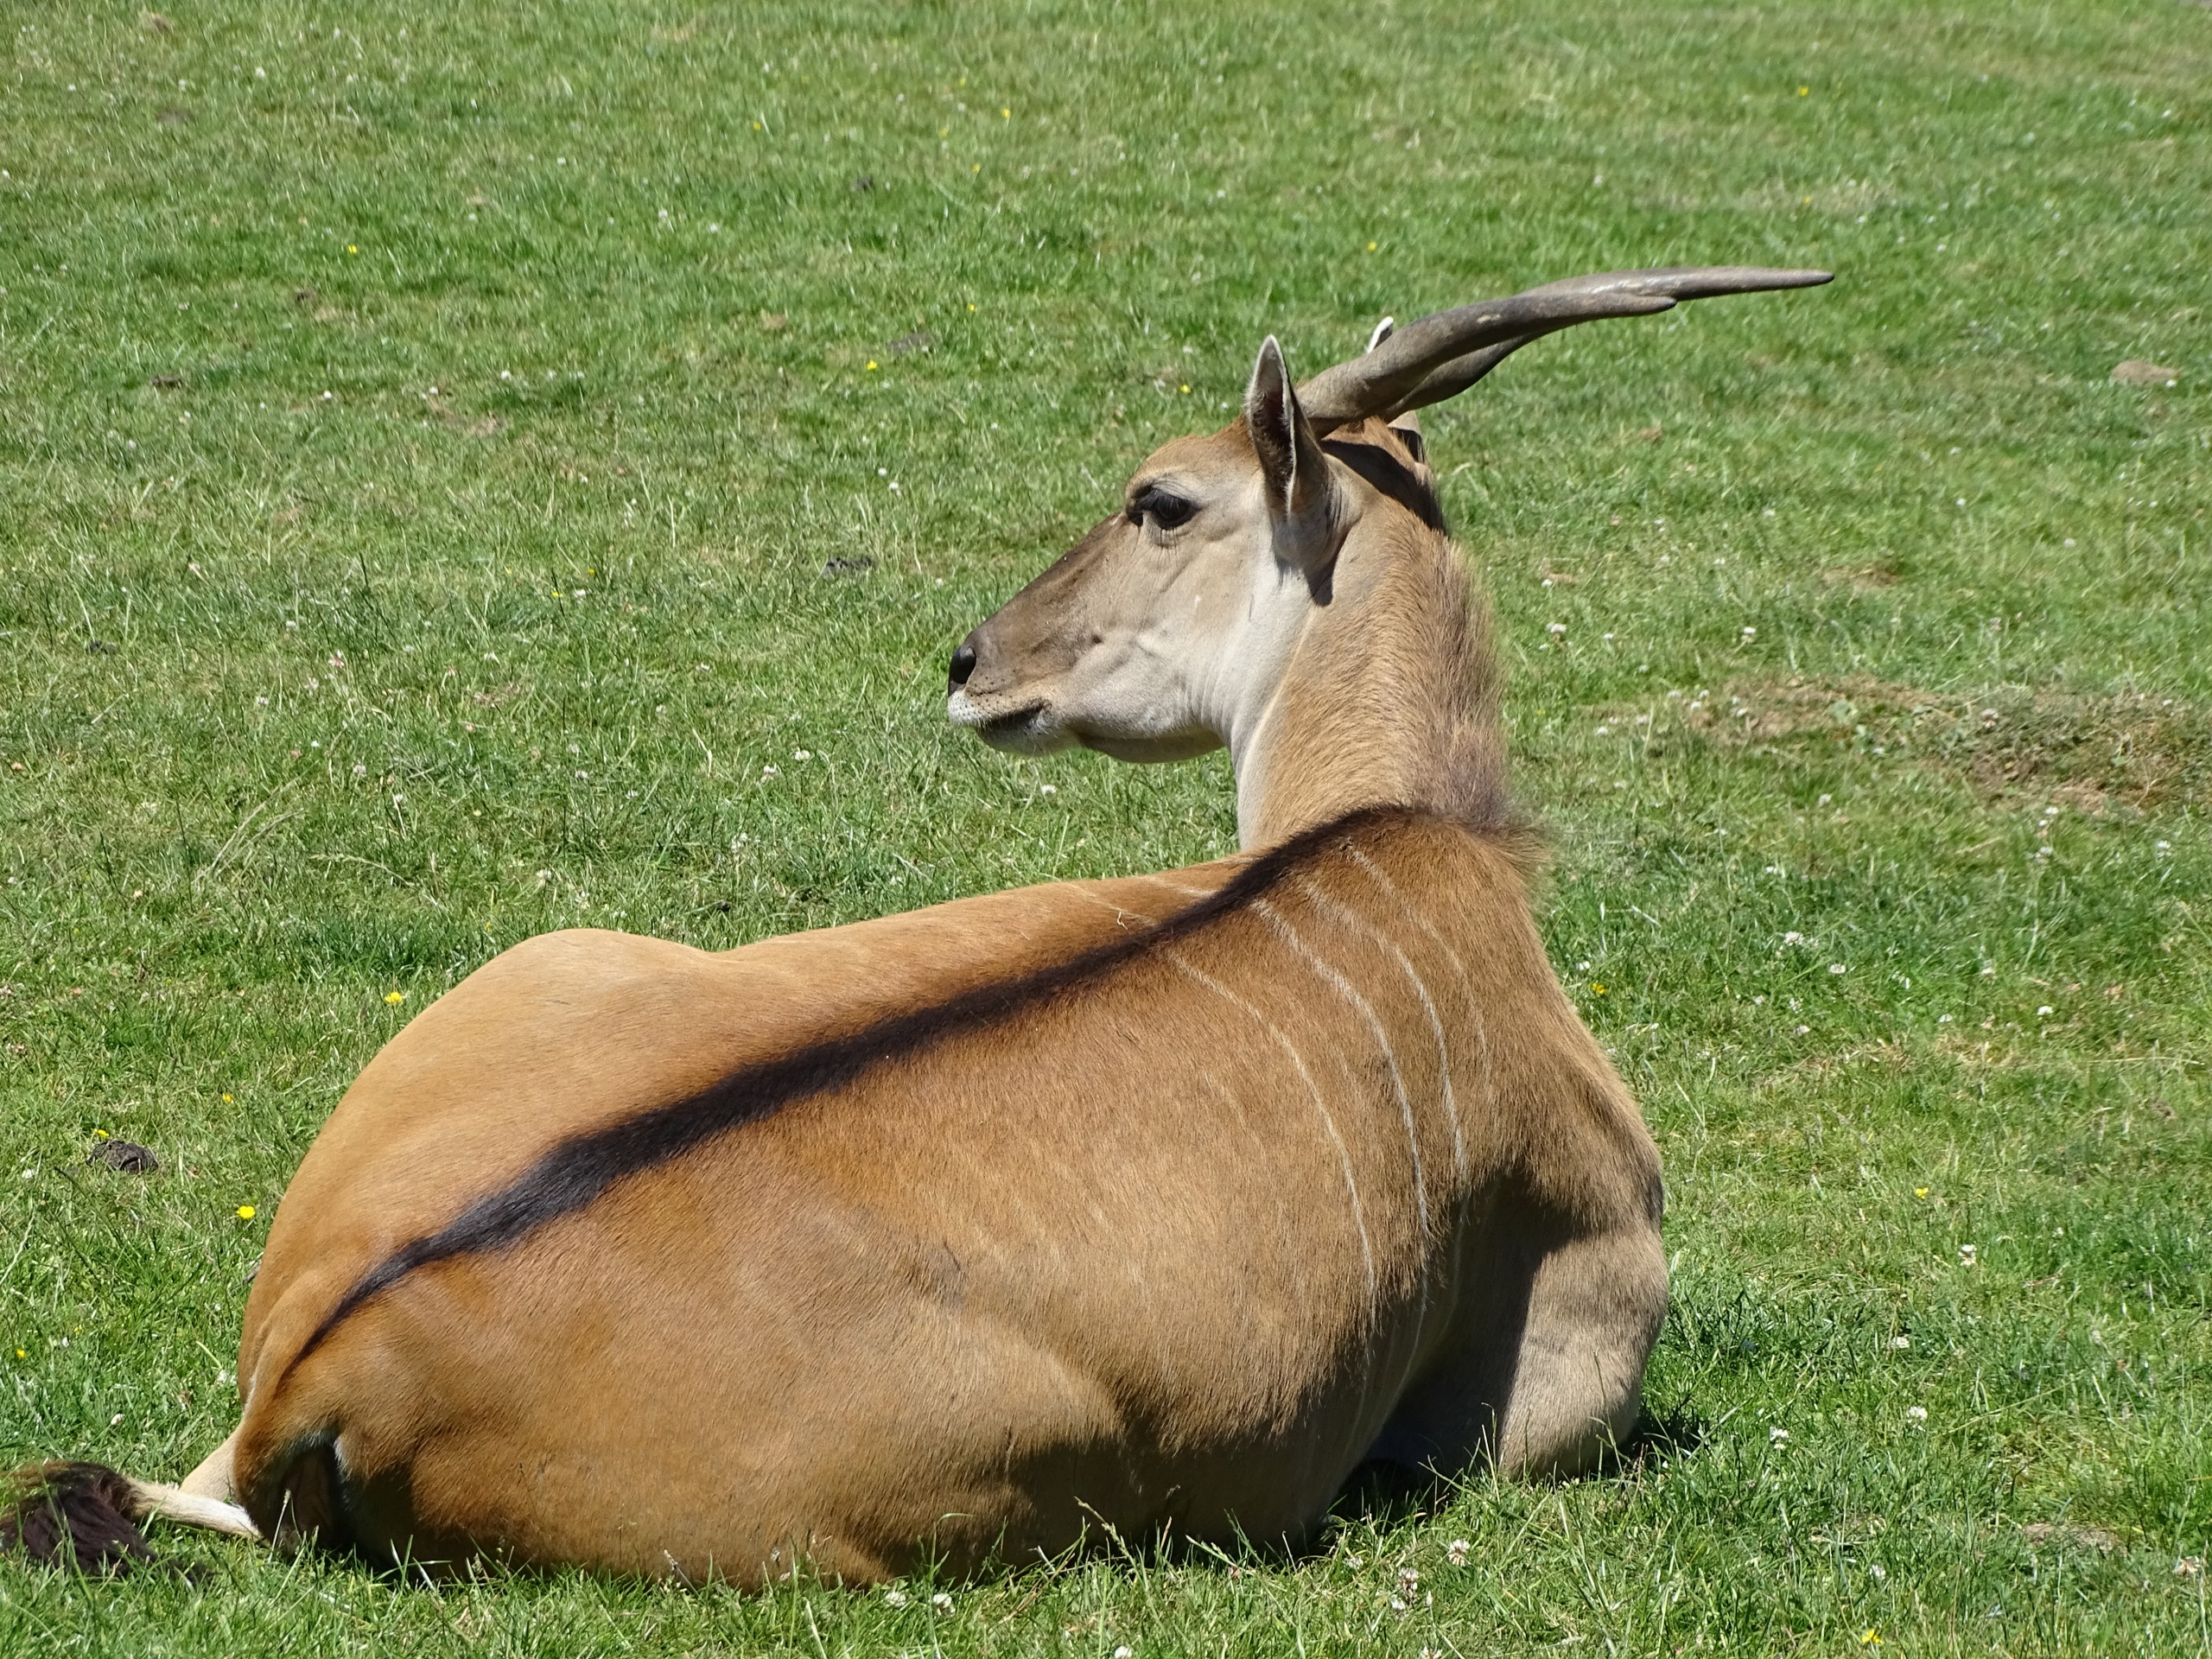 Antelope resting on the grass